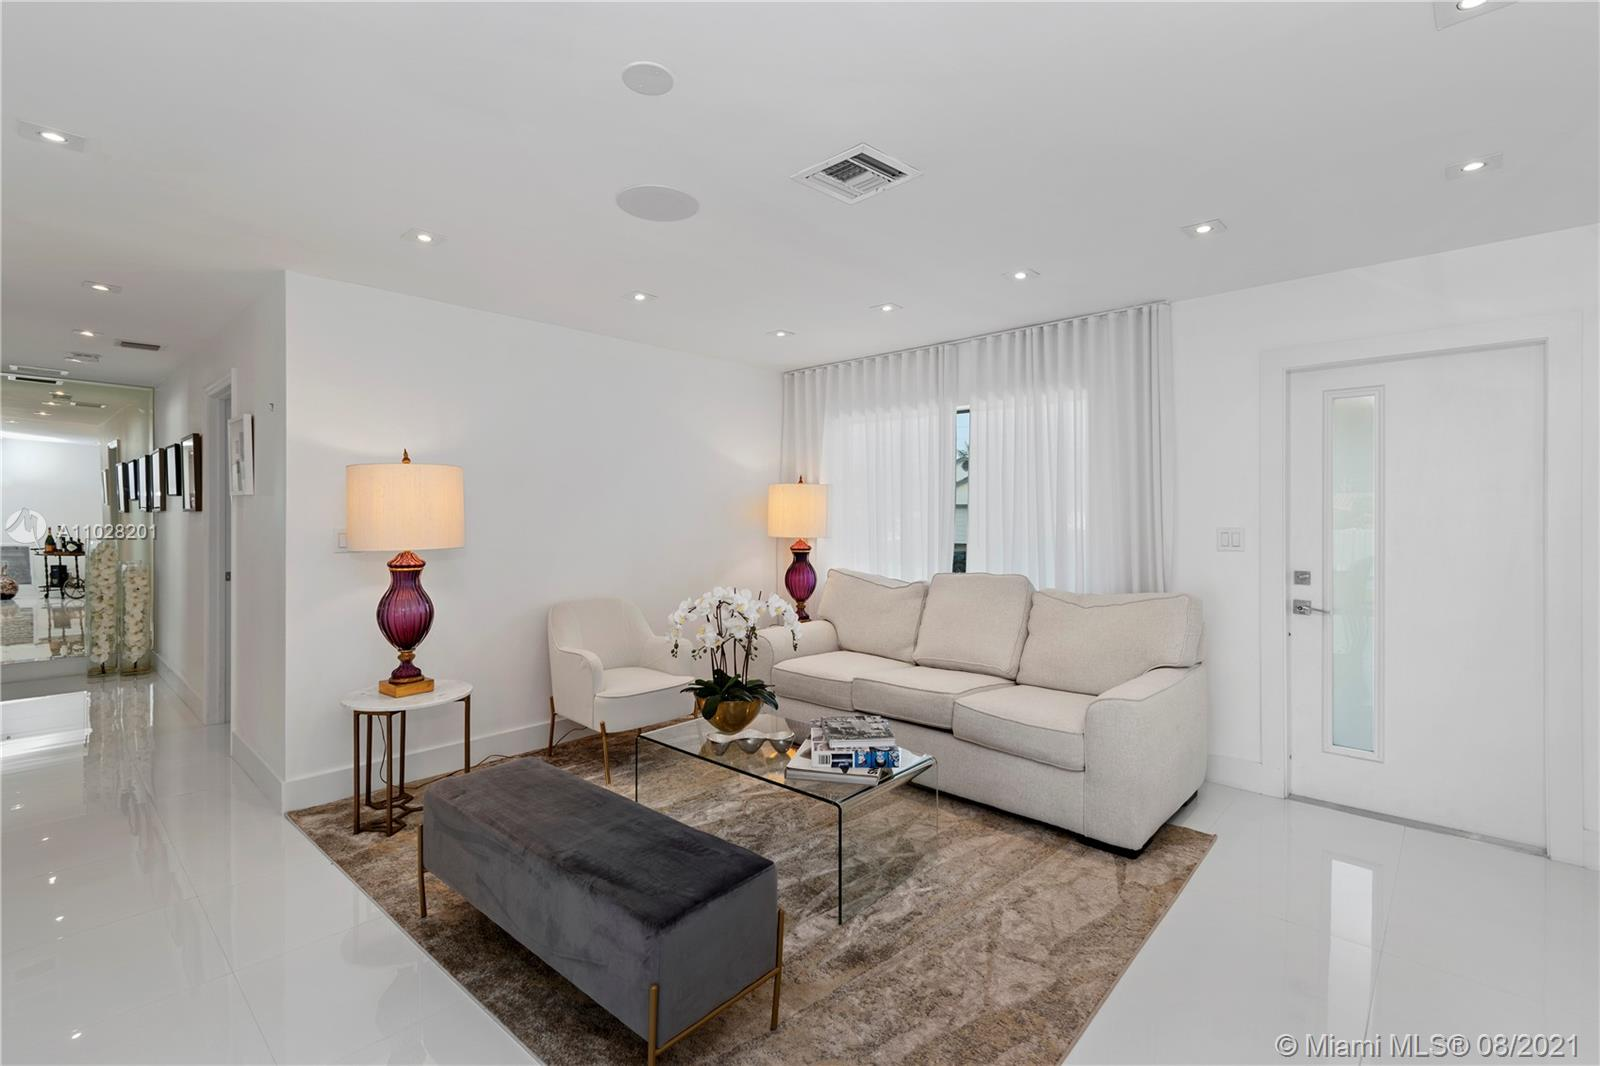 All new white porcelain floors throughout